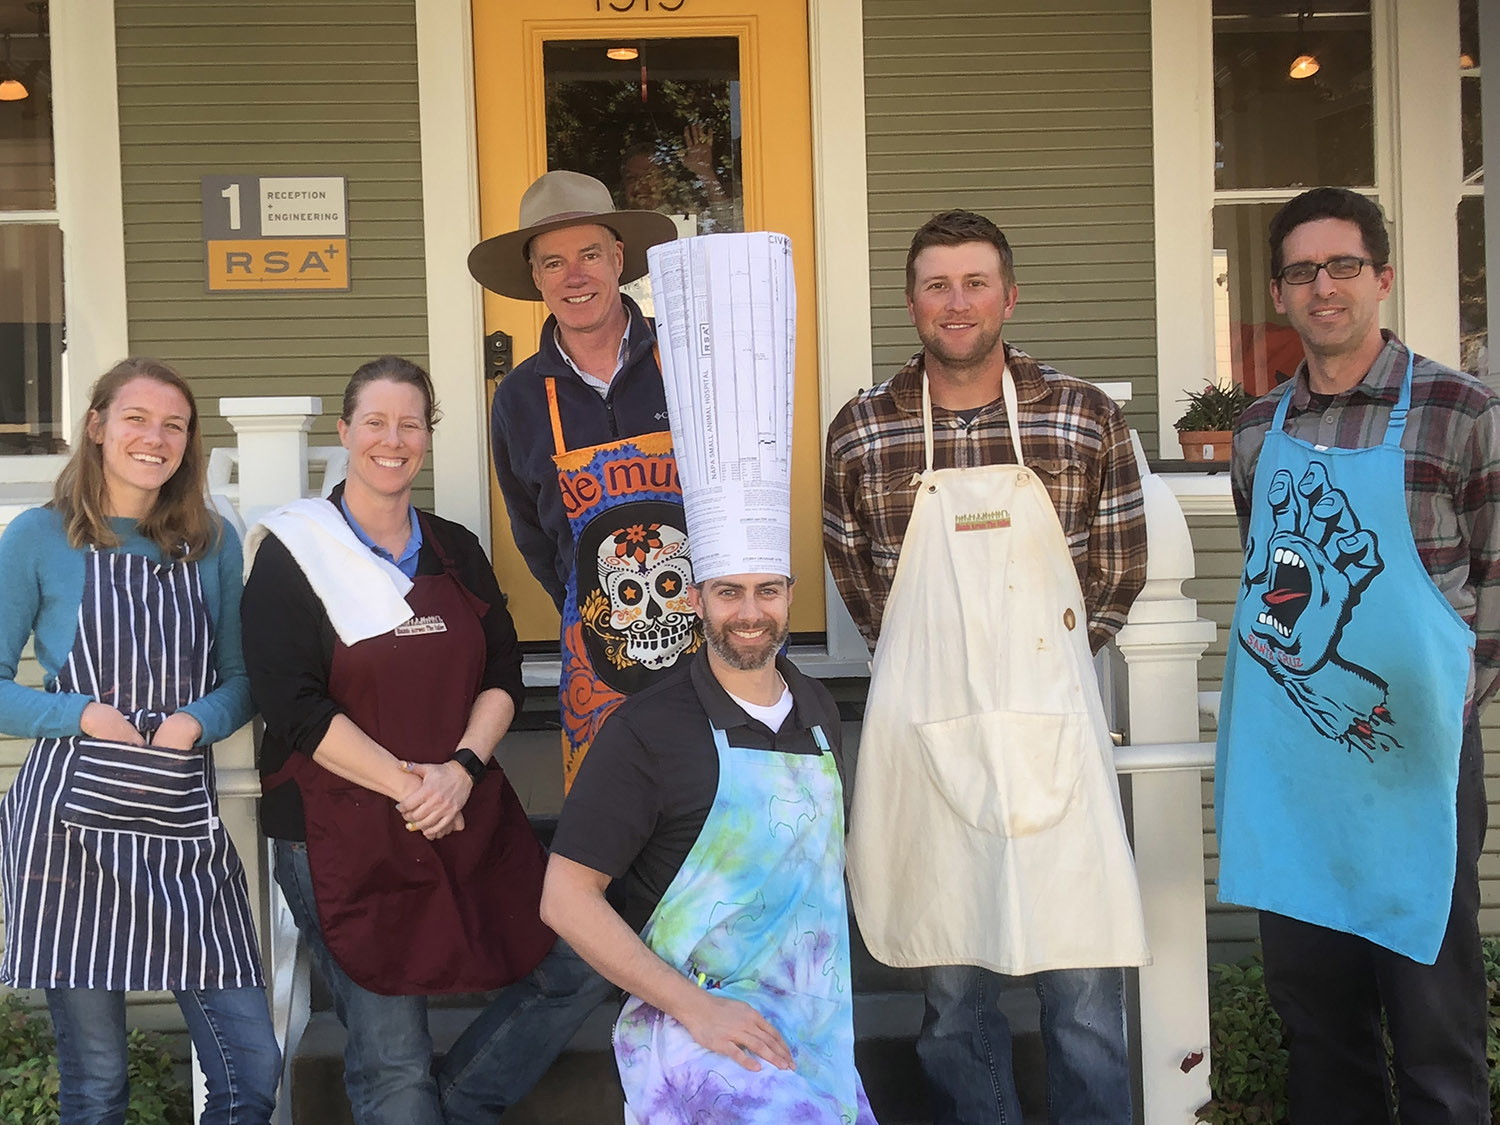 2nd Place Winner - (solely because of the 10-gallon hat)Too Many Cooks in the Kitchen